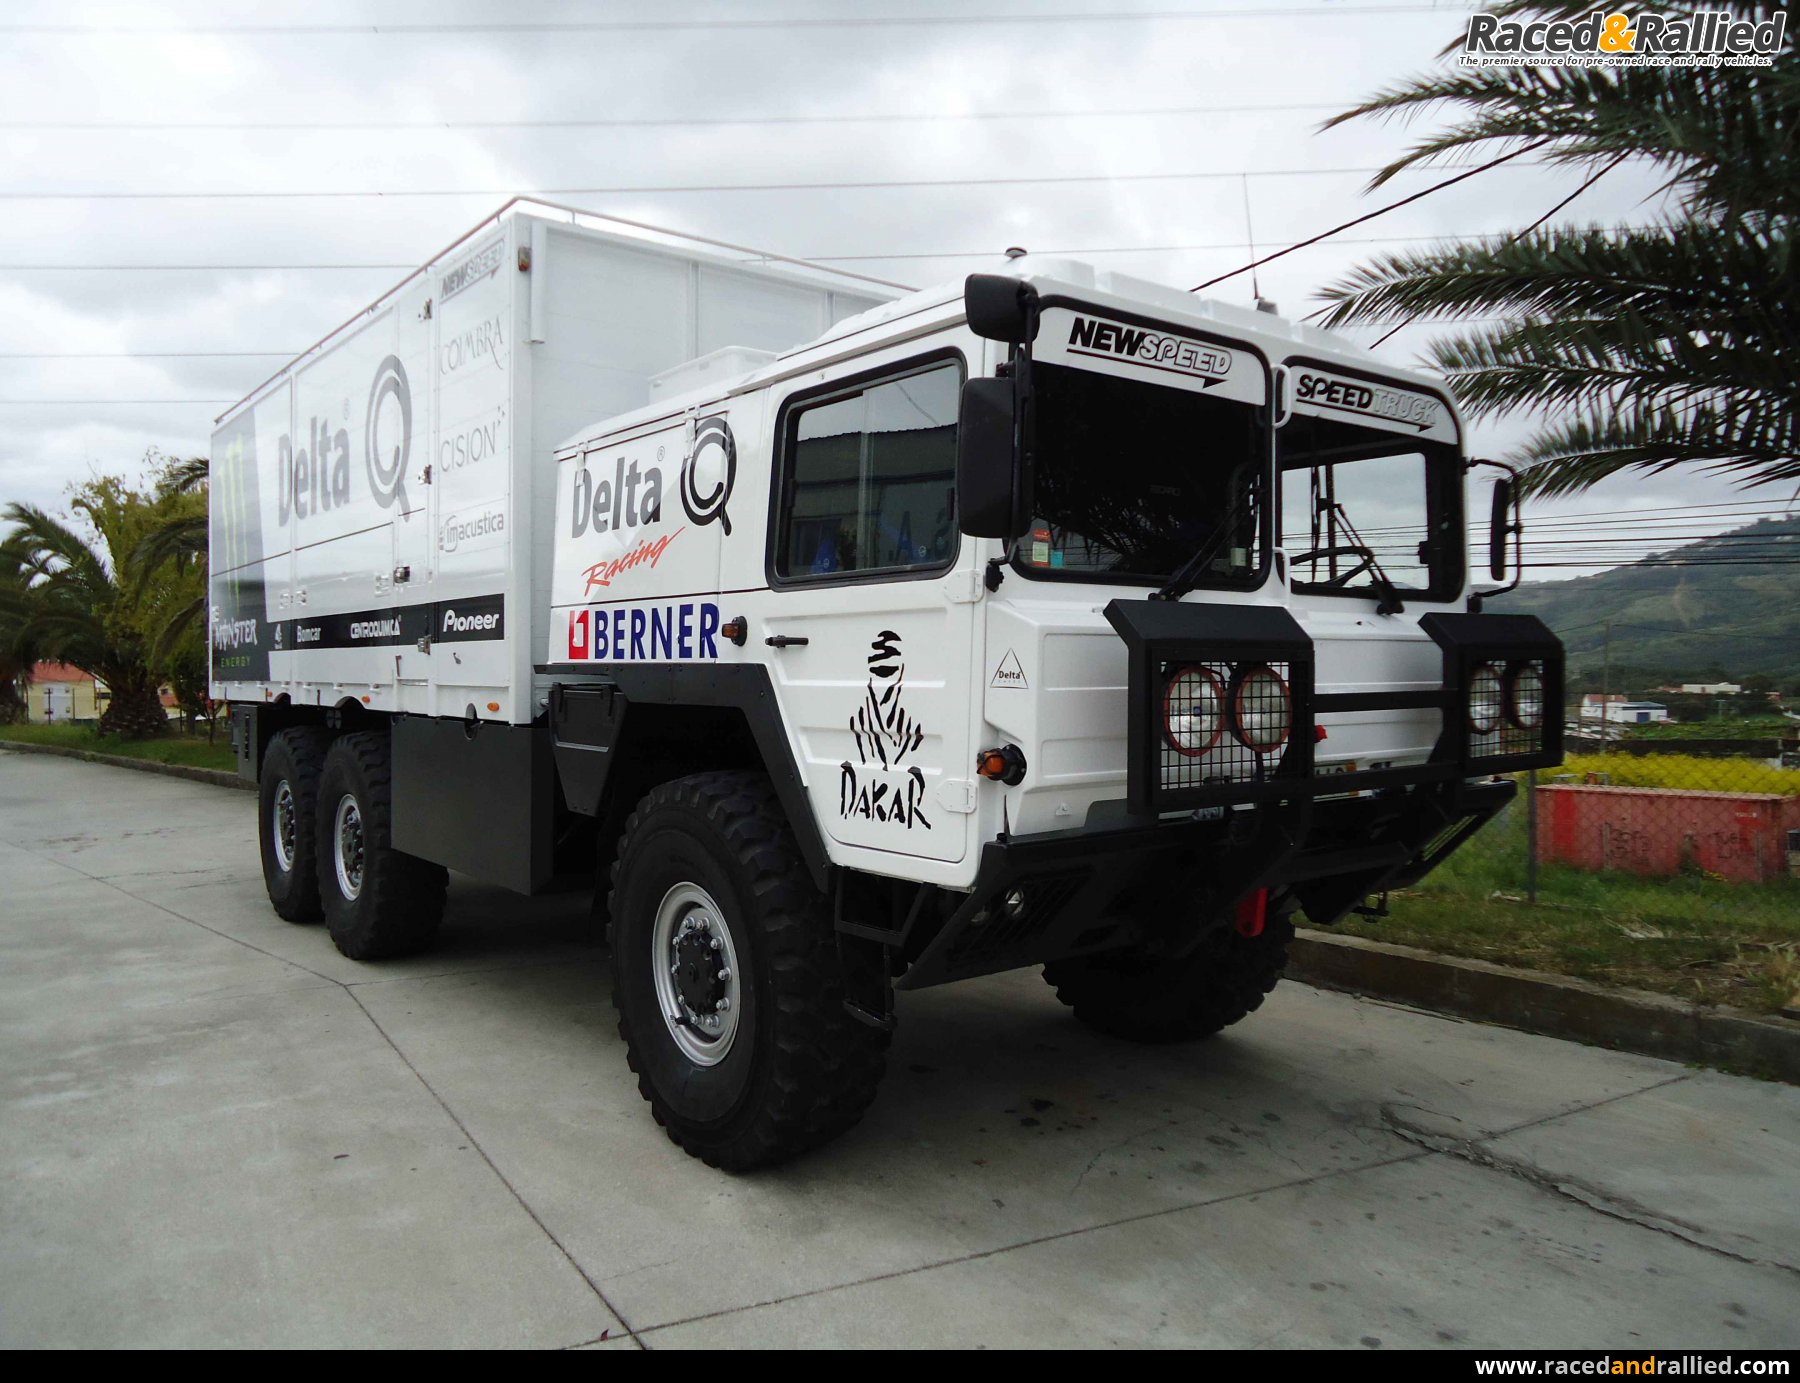 Military Tanks For Sale >> MAN KAT1 - Service Truck | Trailers & Transporters for sale at Raced & Rallied | rally cars for ...